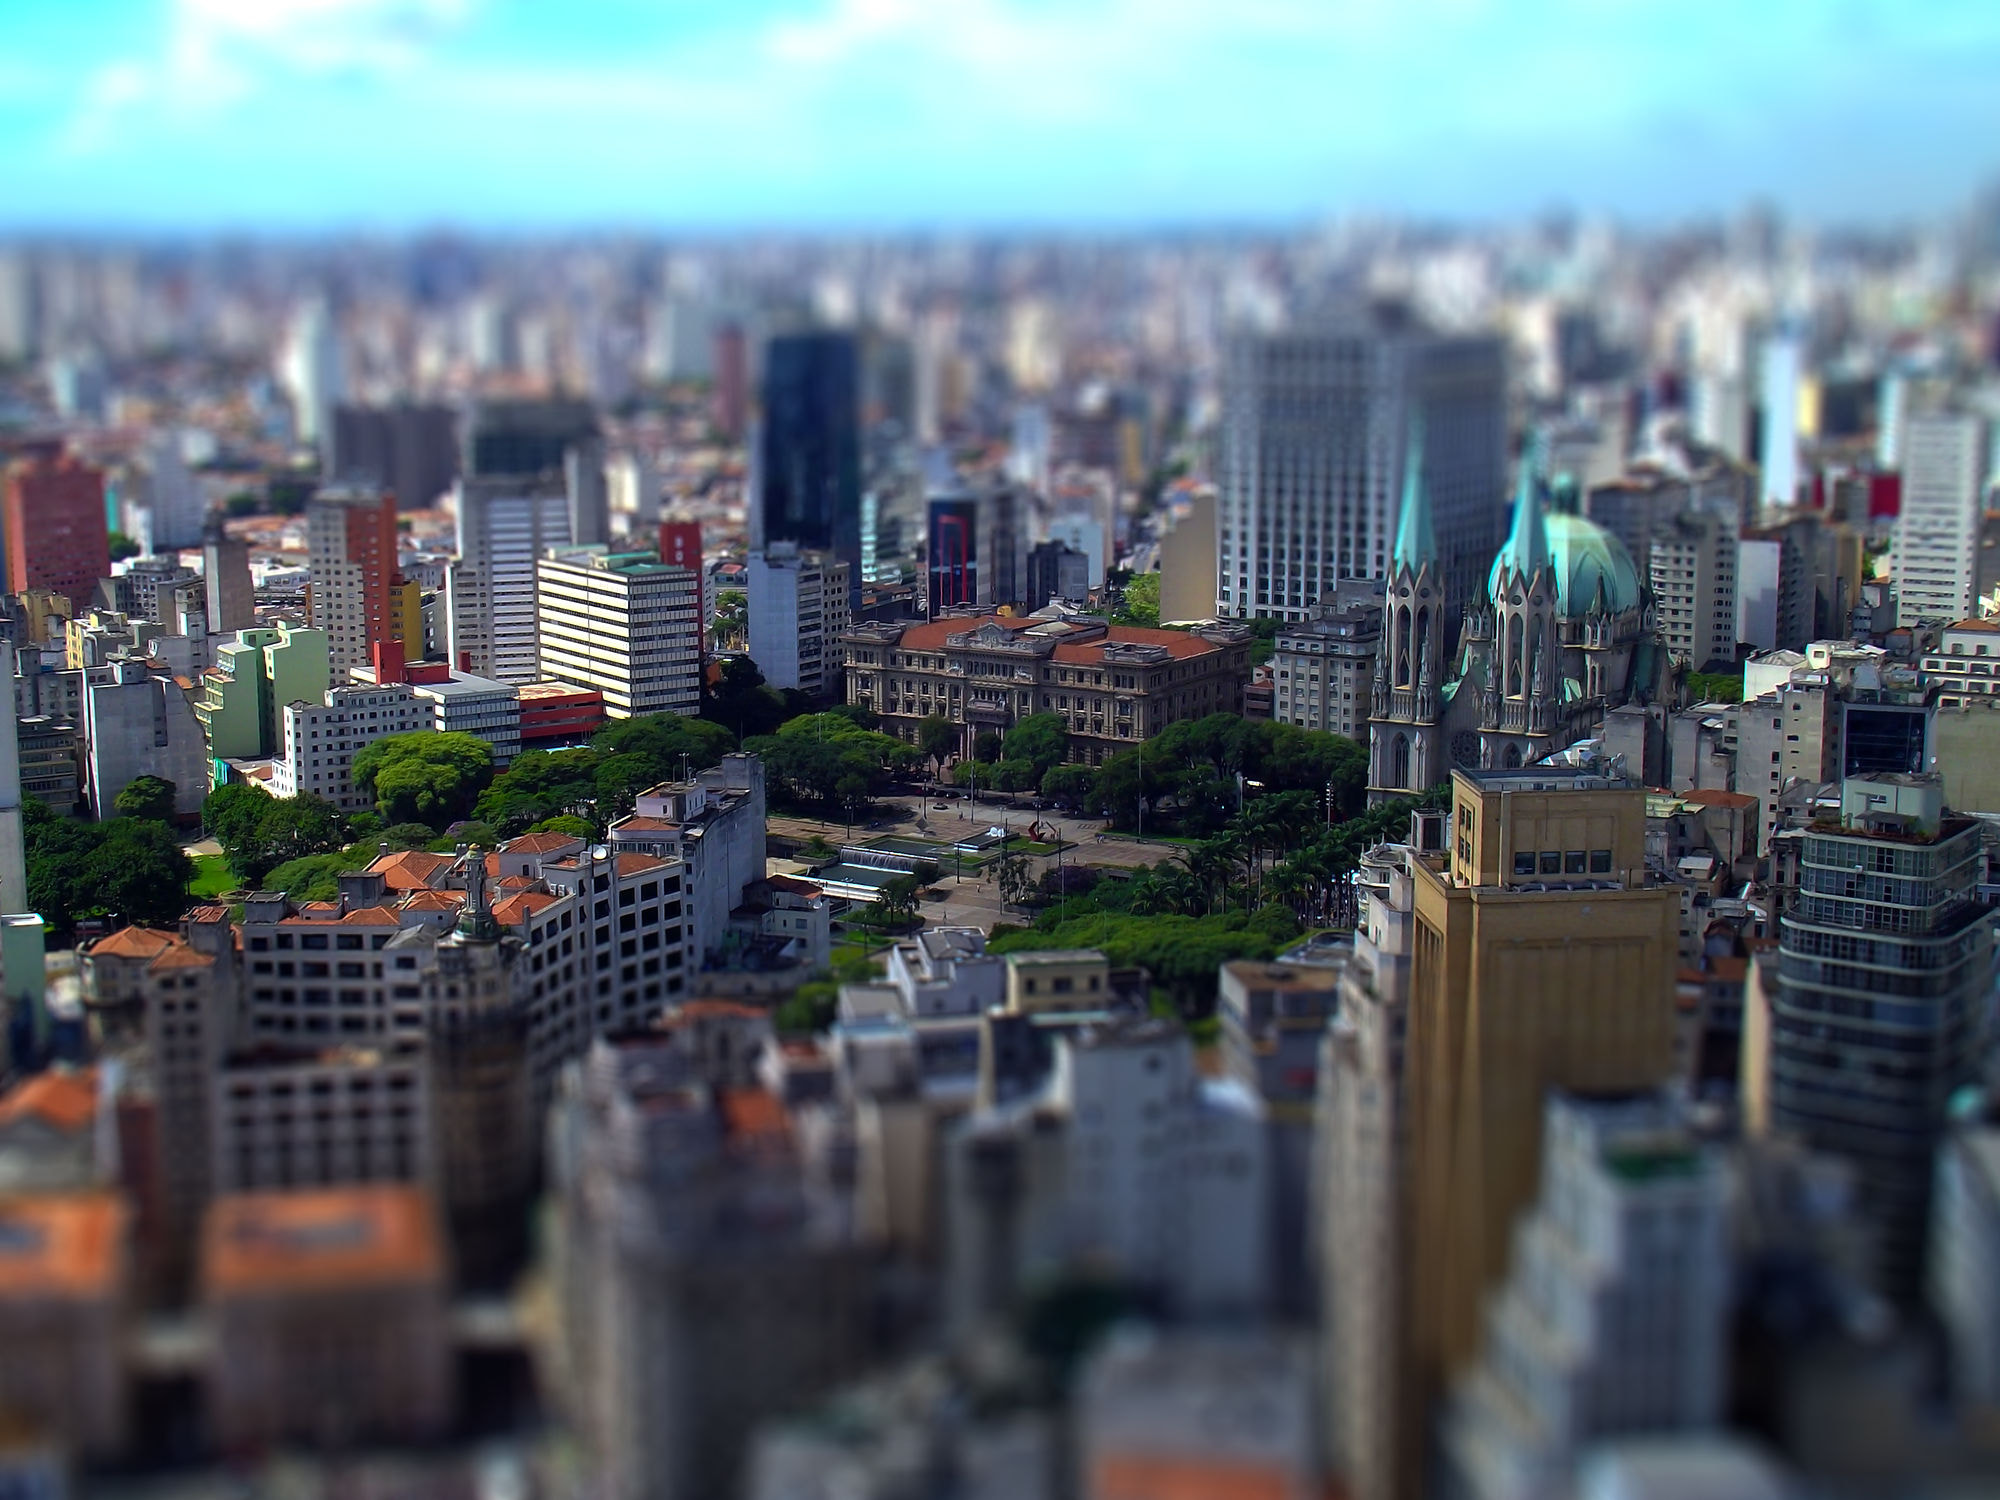 Photograph Tilt shift by Robson Ortlibas on 500px